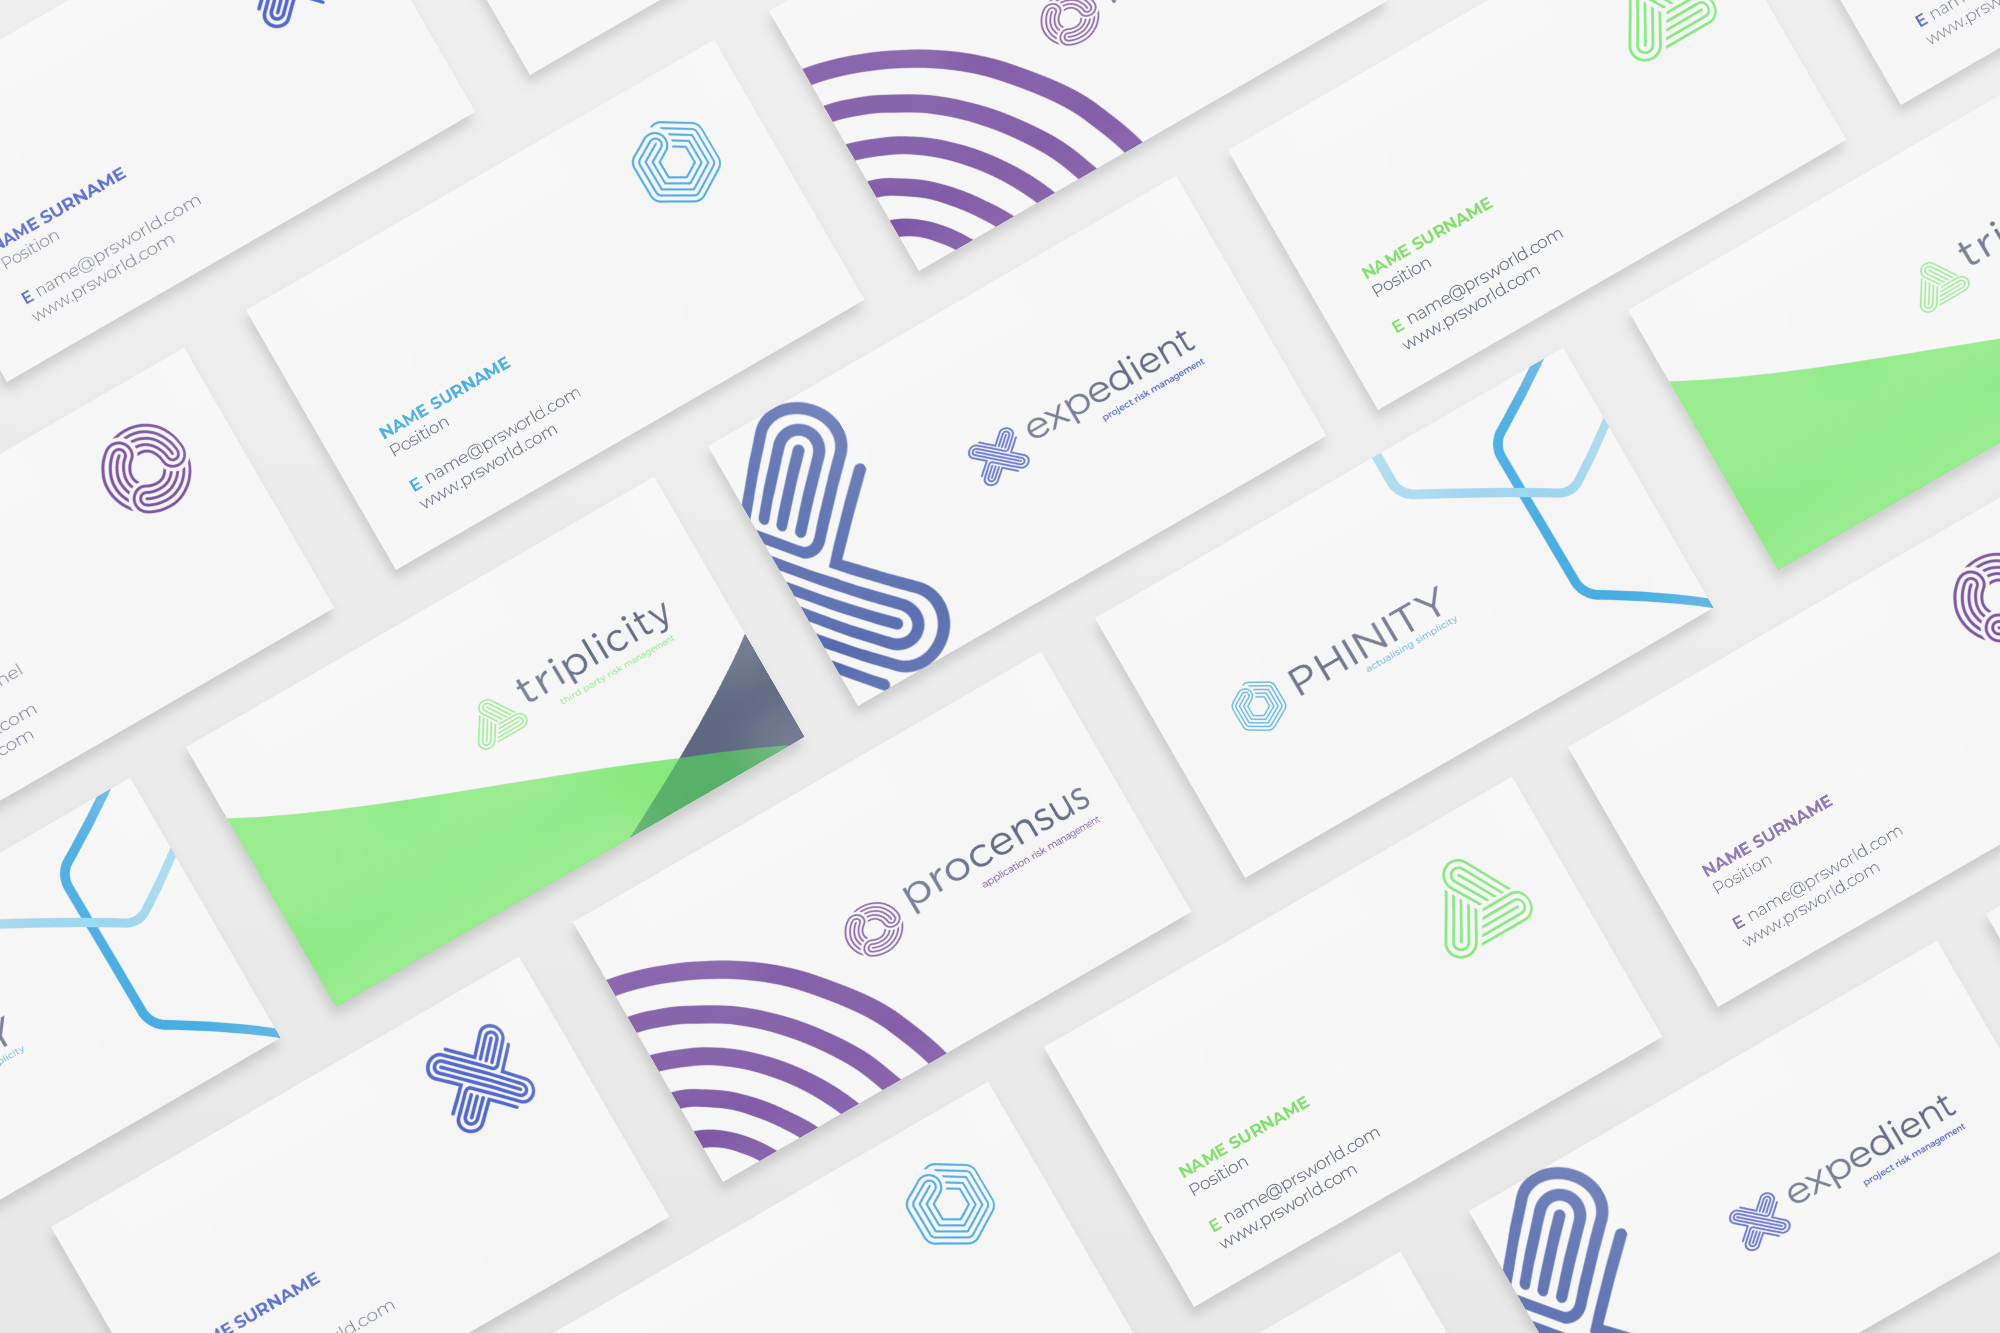 Phinity Suite Business Cards